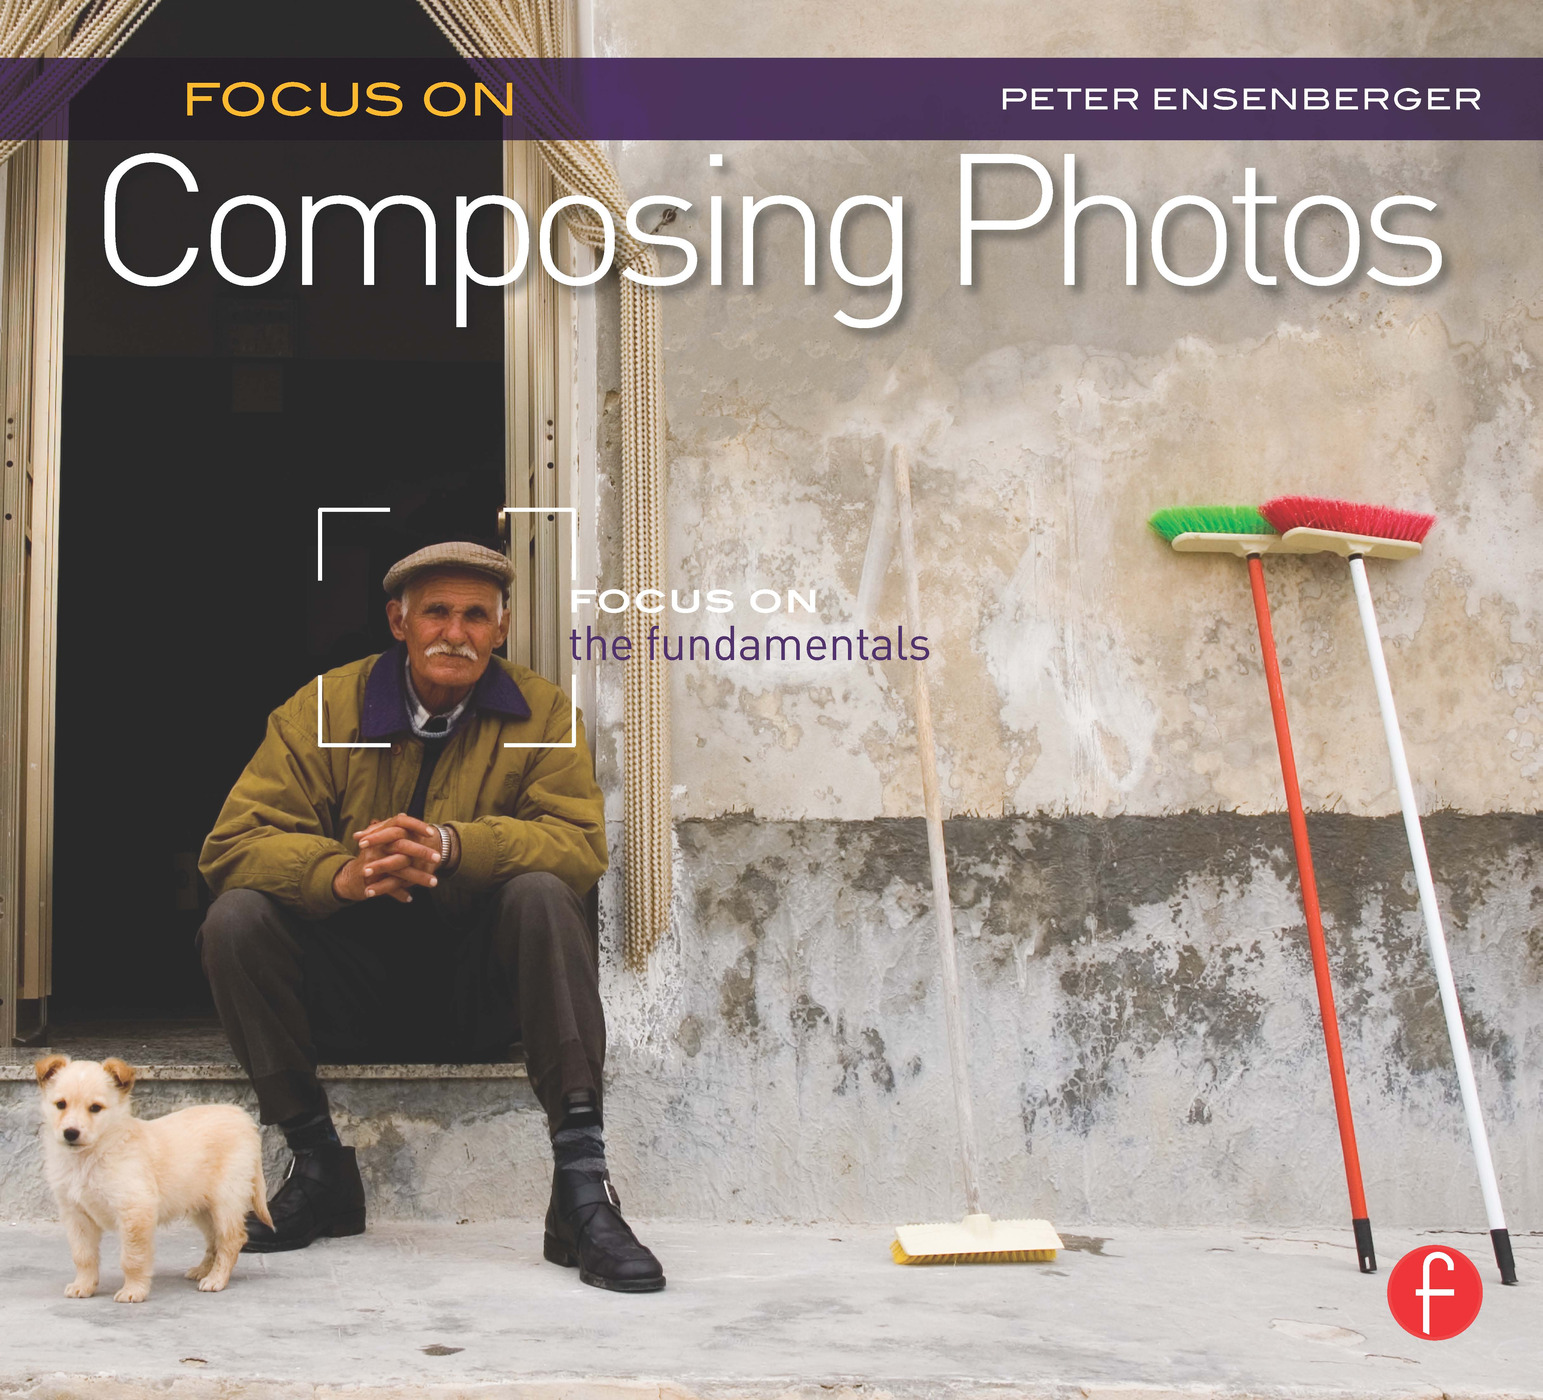 Focus On Composing Photos: Focus on the Fundamentals (Focus On Series) book cover